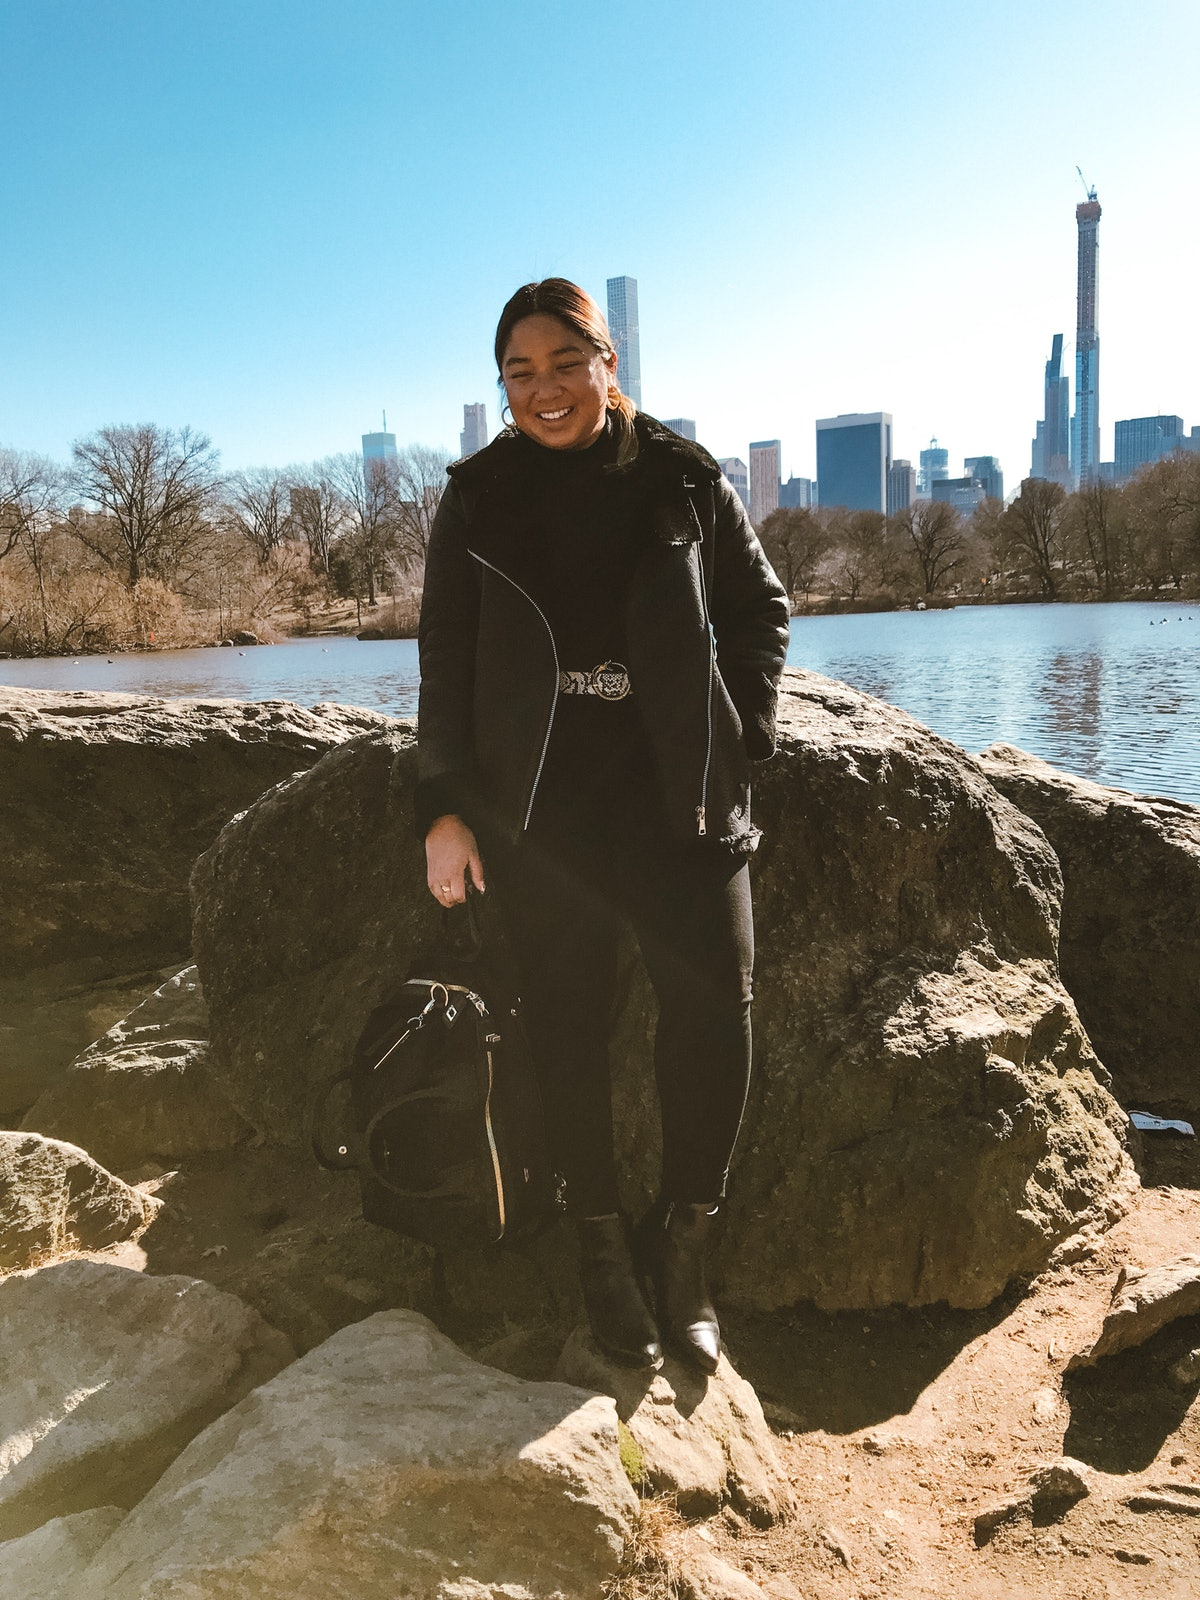 A woman in all black standing on a rock in New York City's Central Park with tall skyscrapers in the background is smiling.